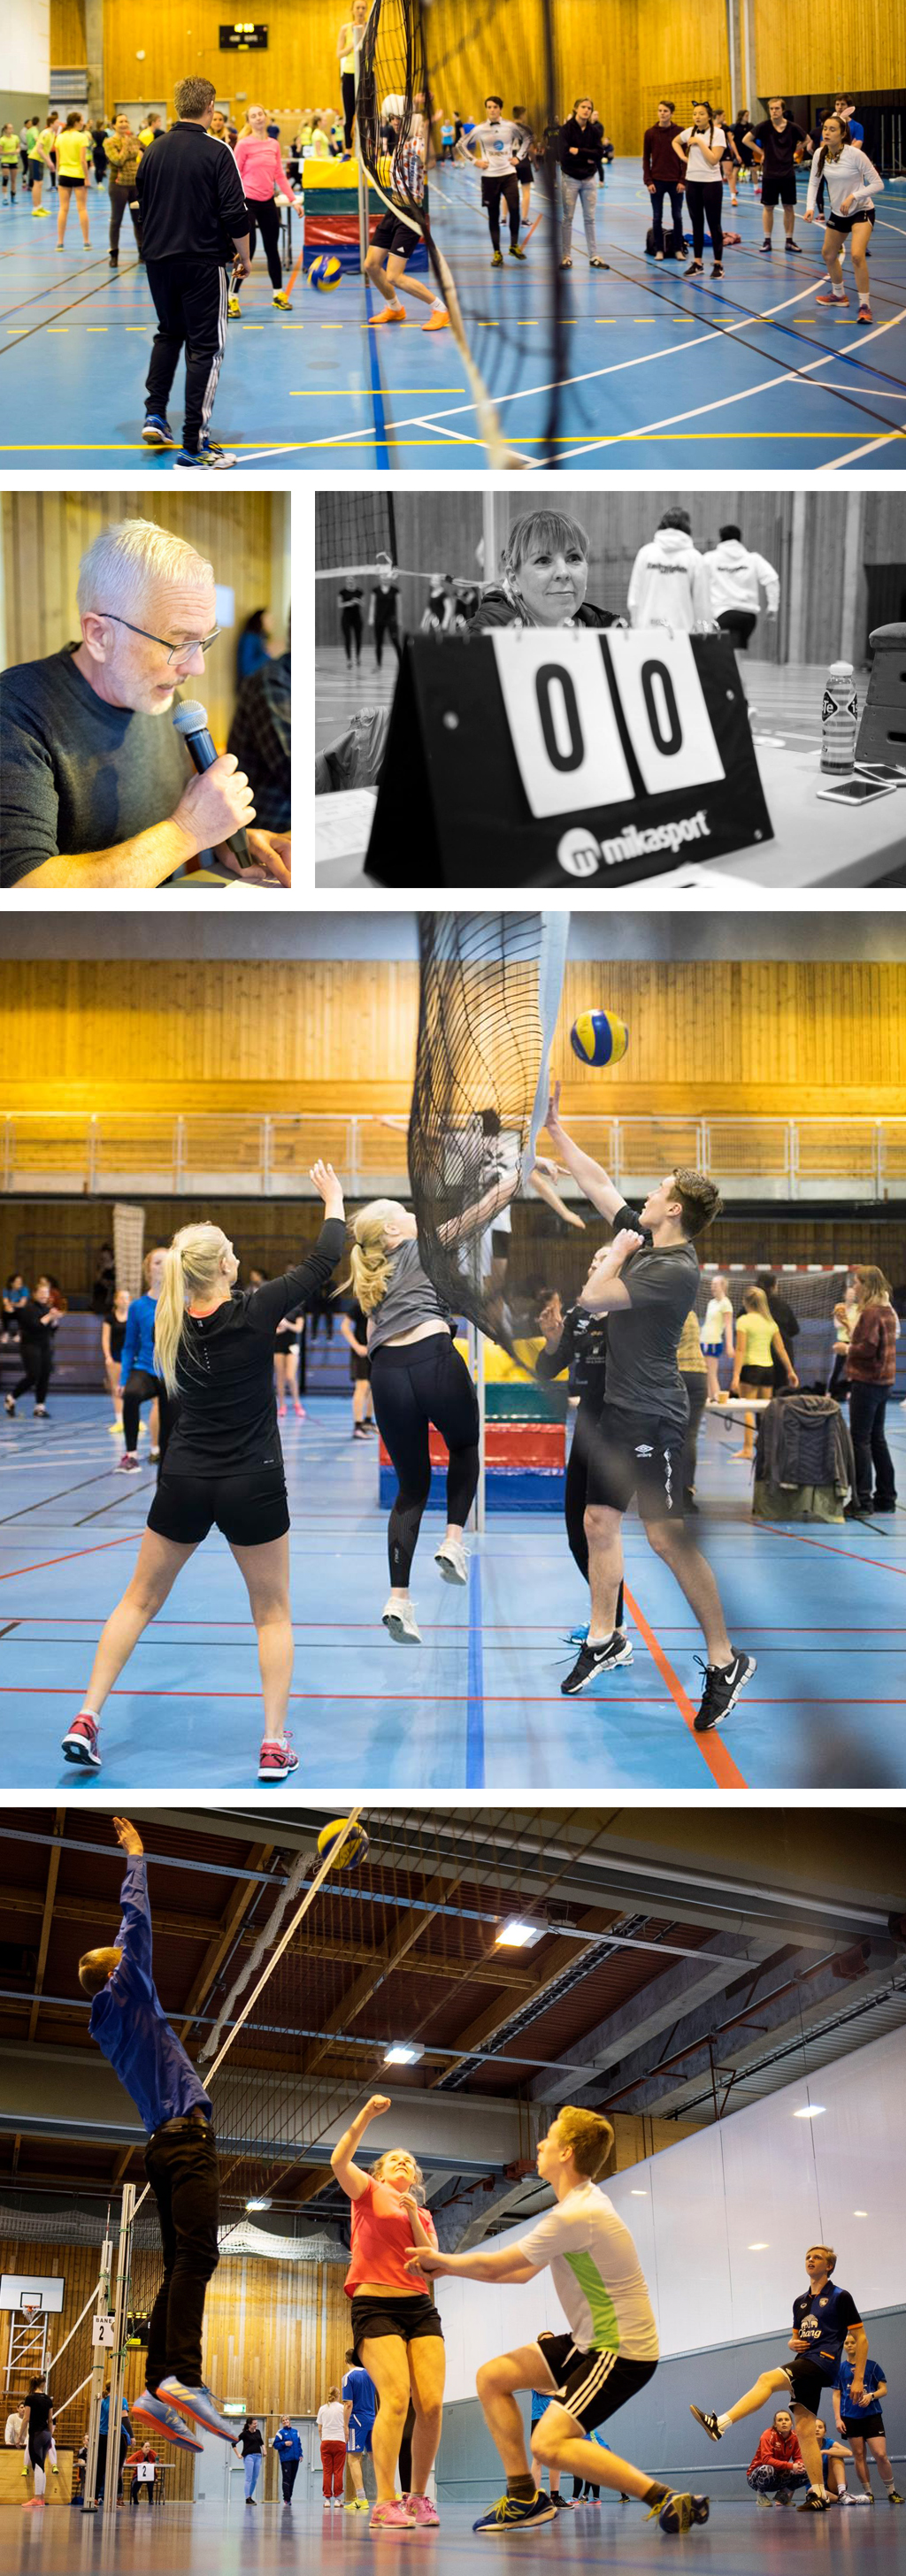 Volleyball, foto - Ole Johnny Devik